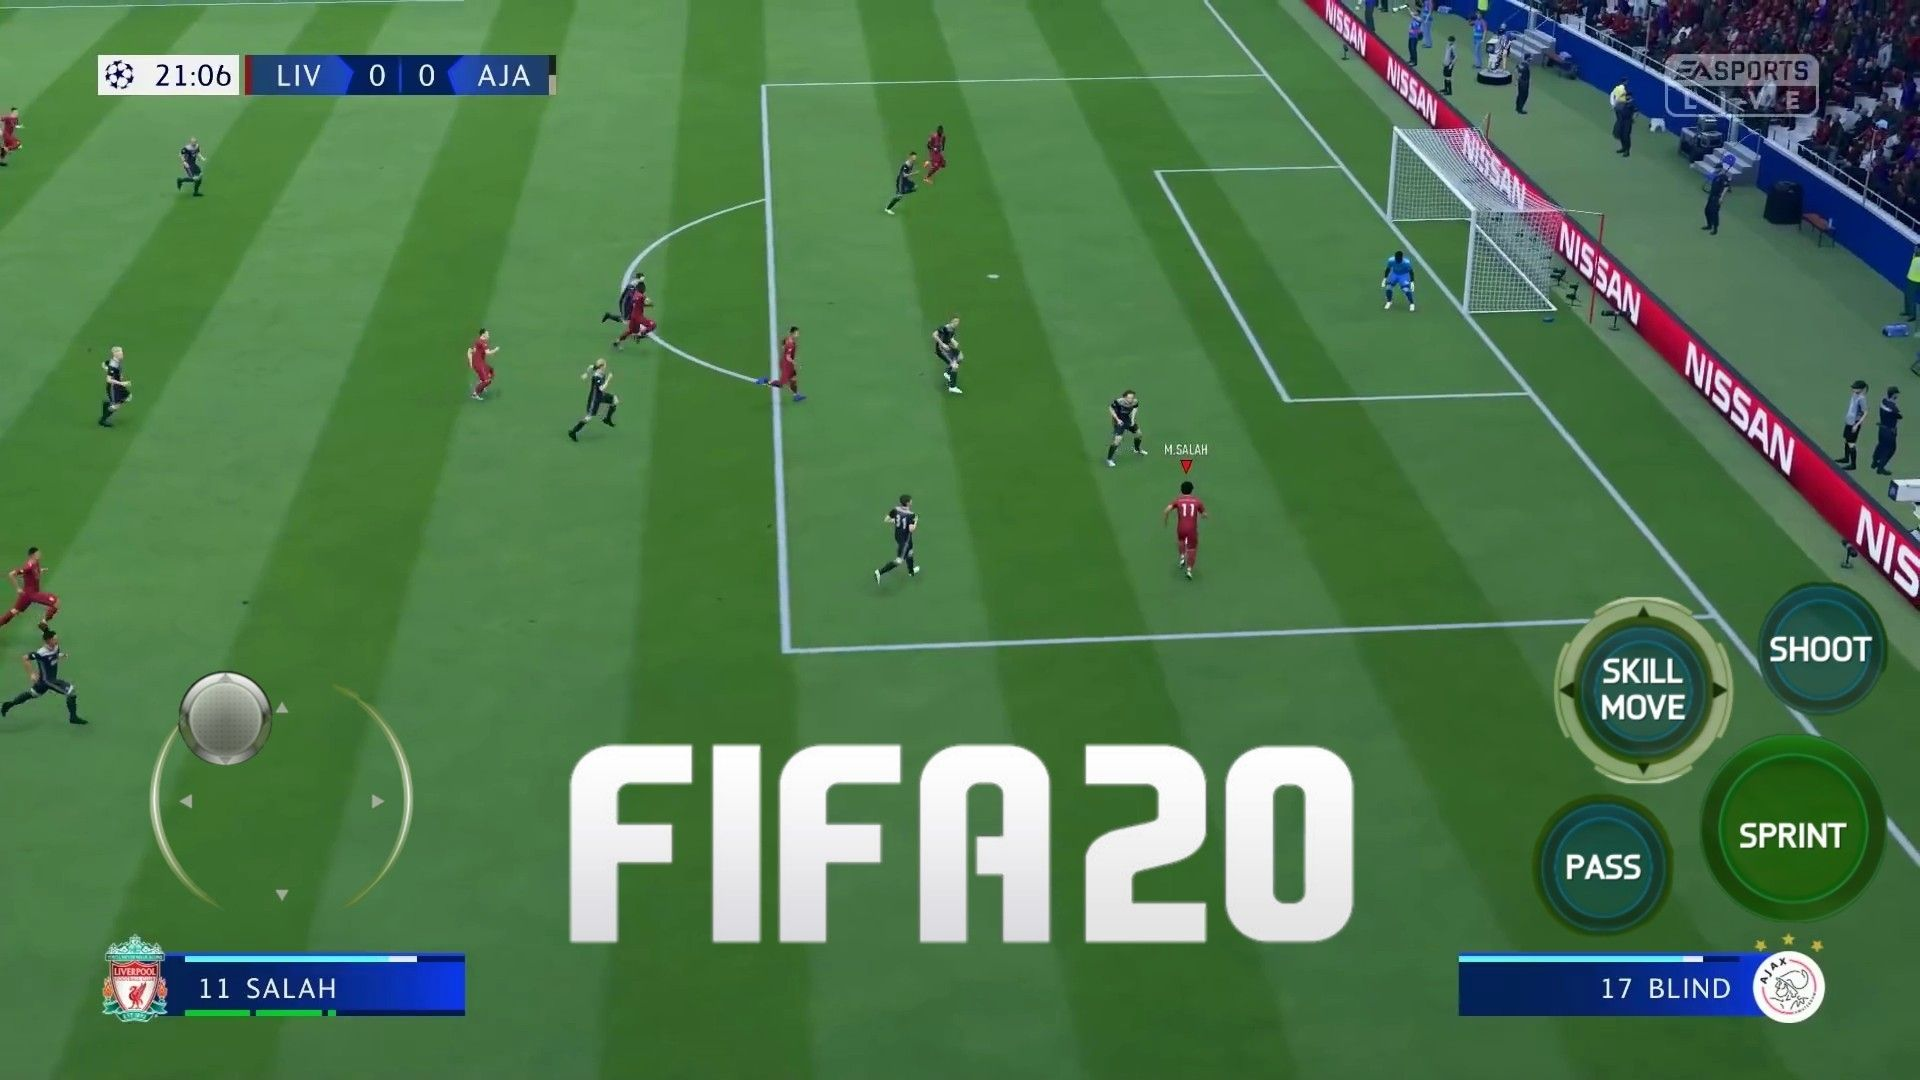 Download FIFA 2020 Mobile Mod apk in 2020 | Fifa football, Fifa 20, Fifa